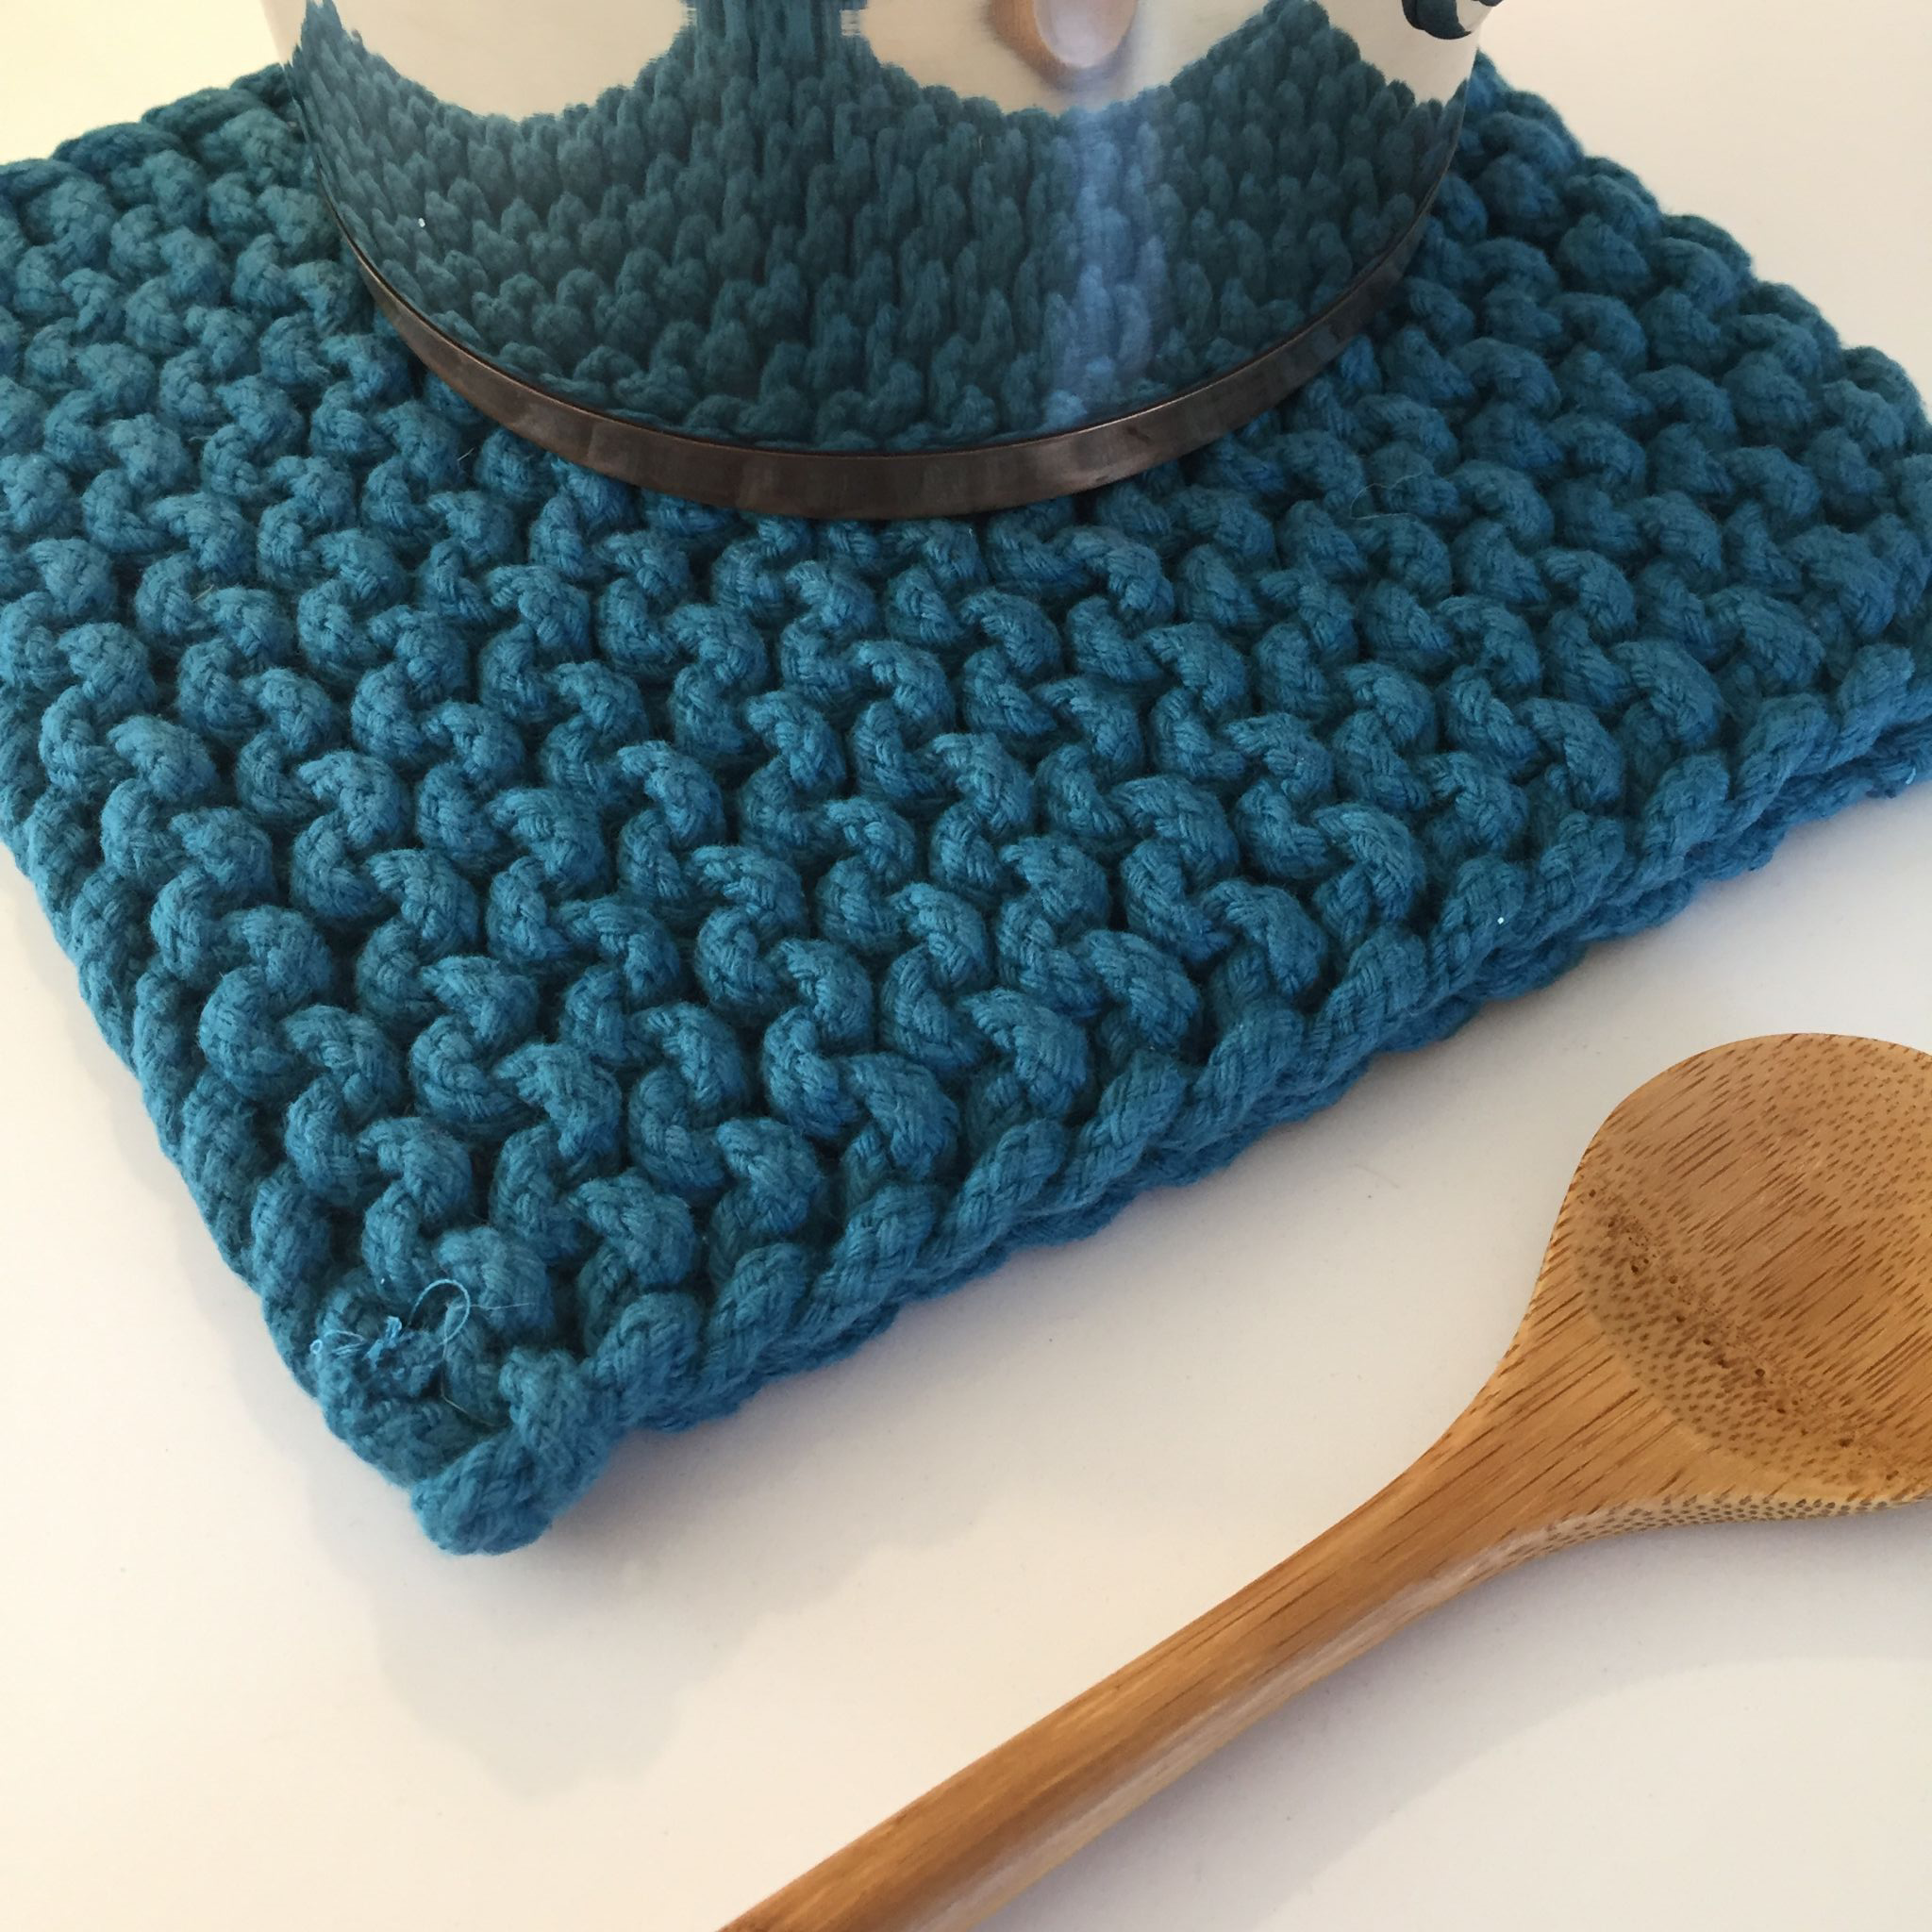 Teal Crochet Pot Holder